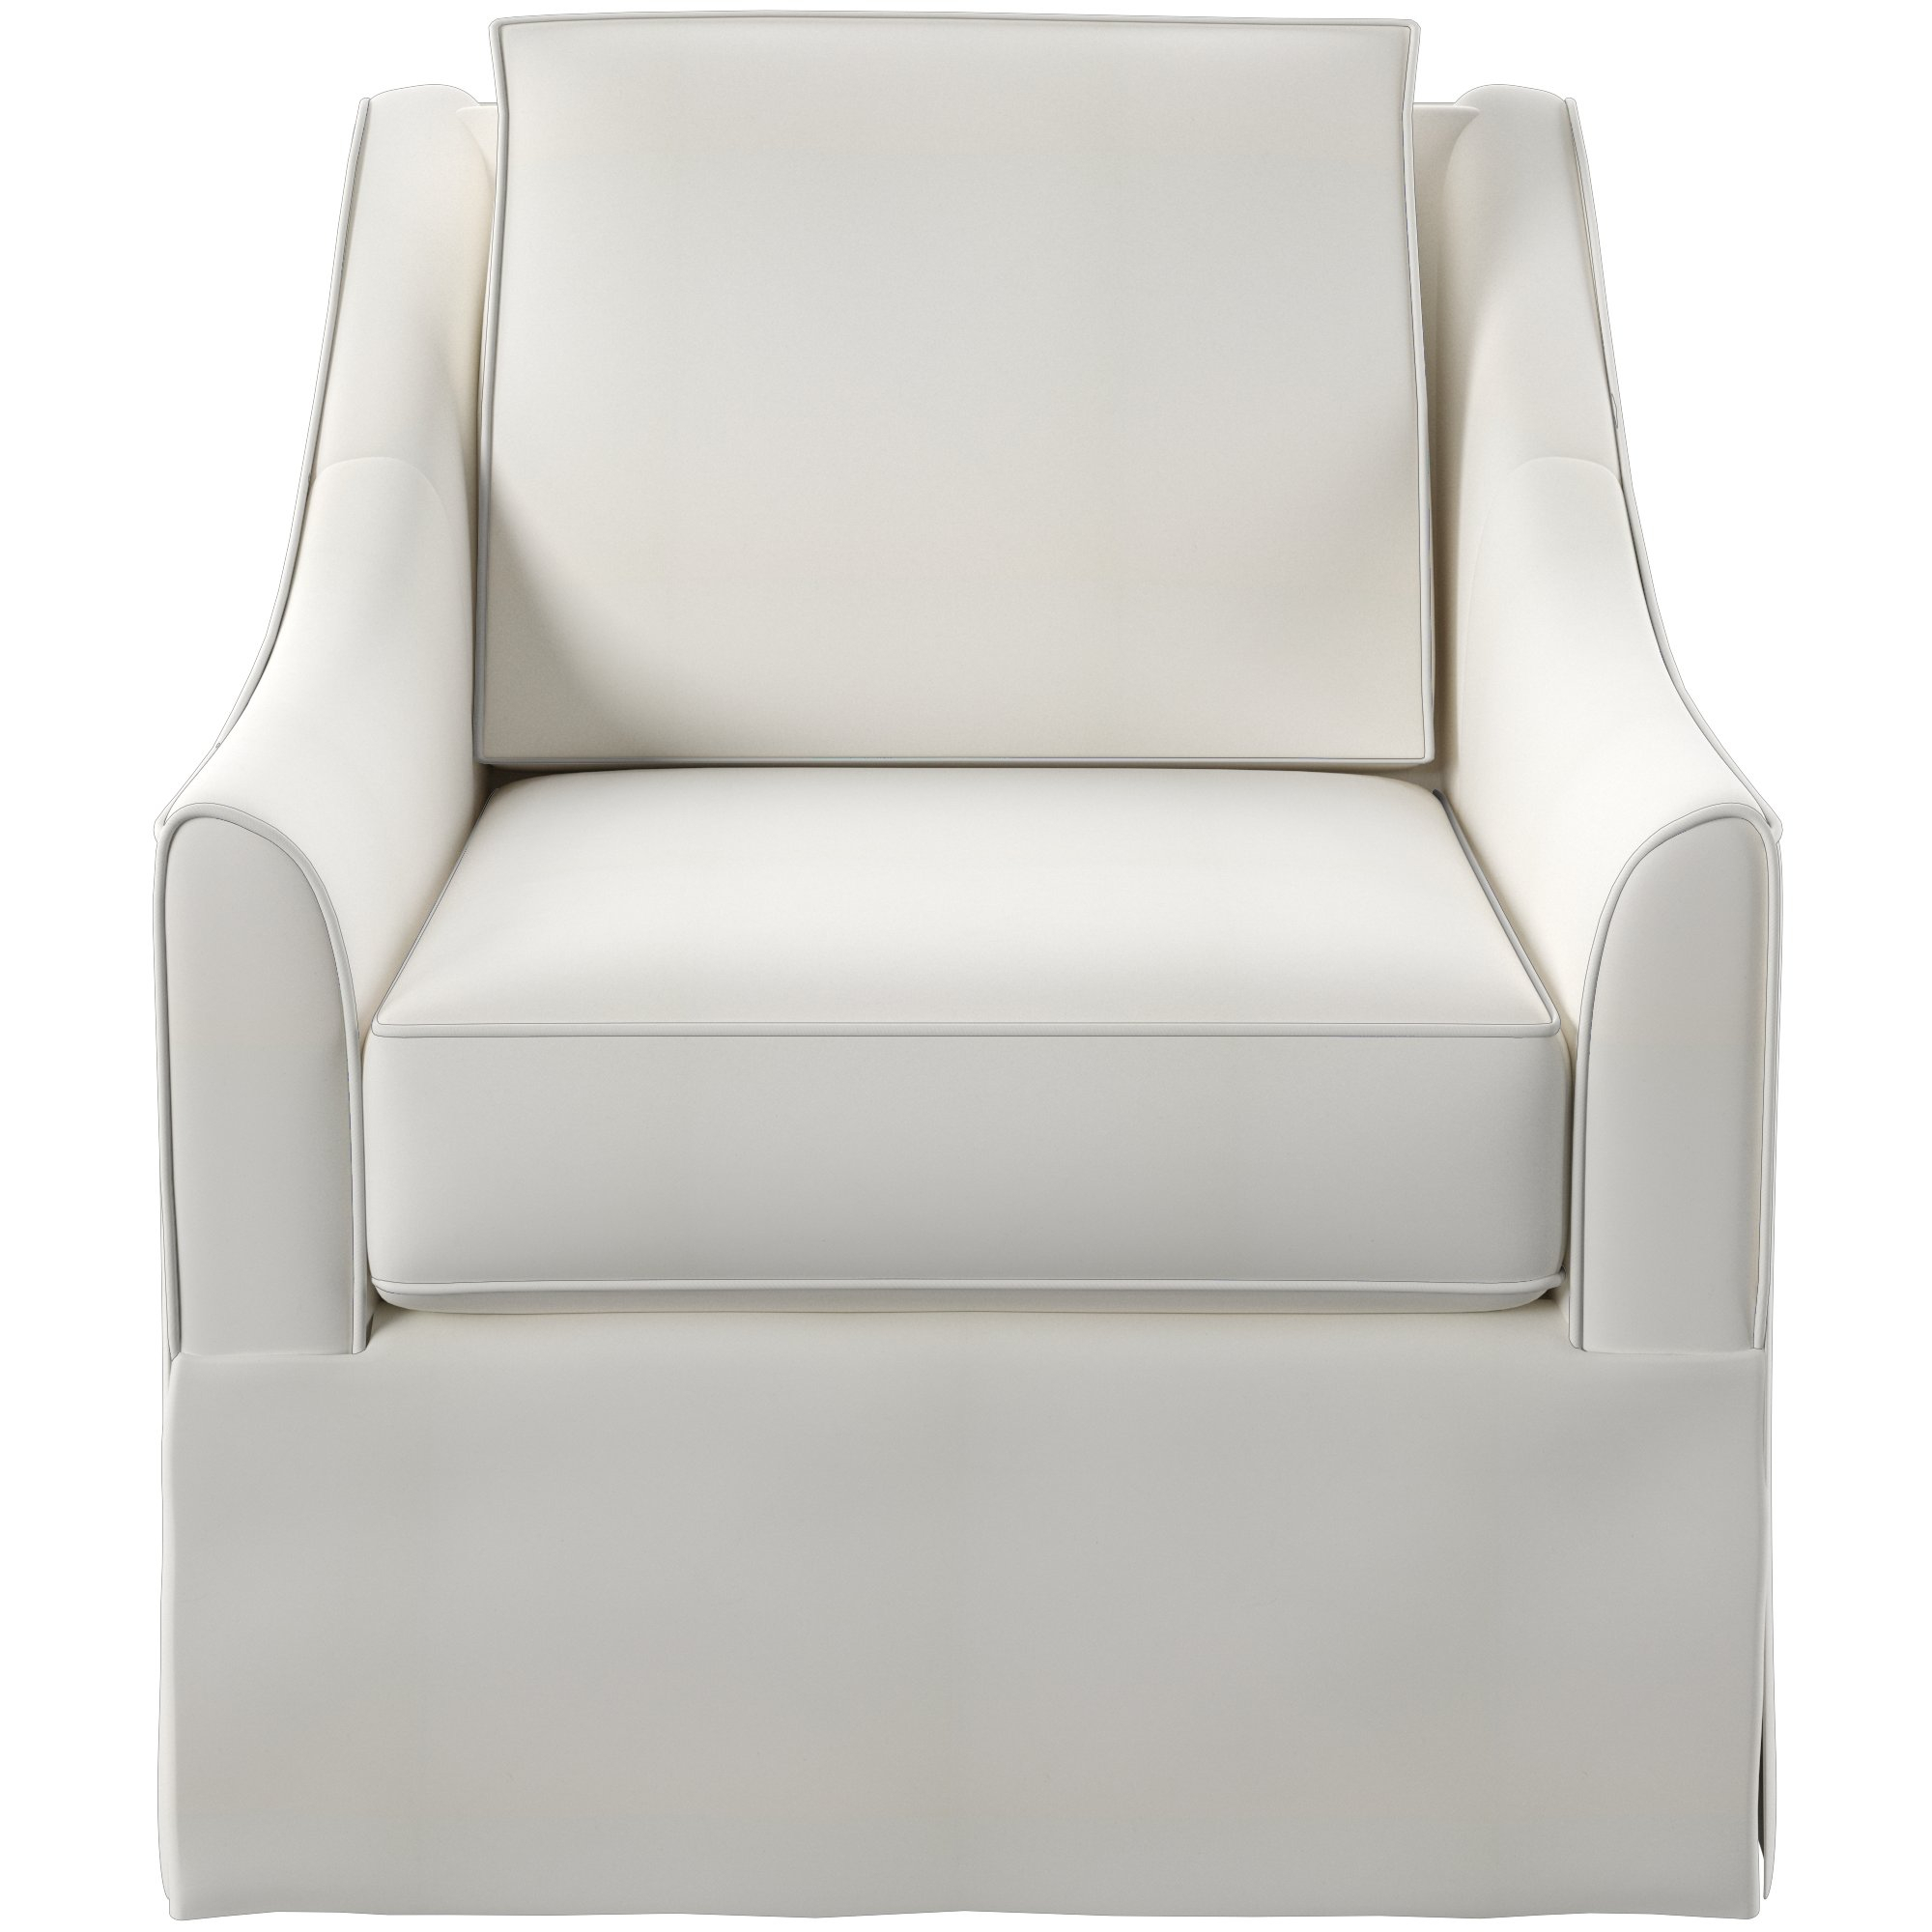 Wayfair Custom Upholstery™ Bella Swivel Chair & Reviews | Wayfair In Devon Ii Swivel Accent Chairs (View 16 of 25)